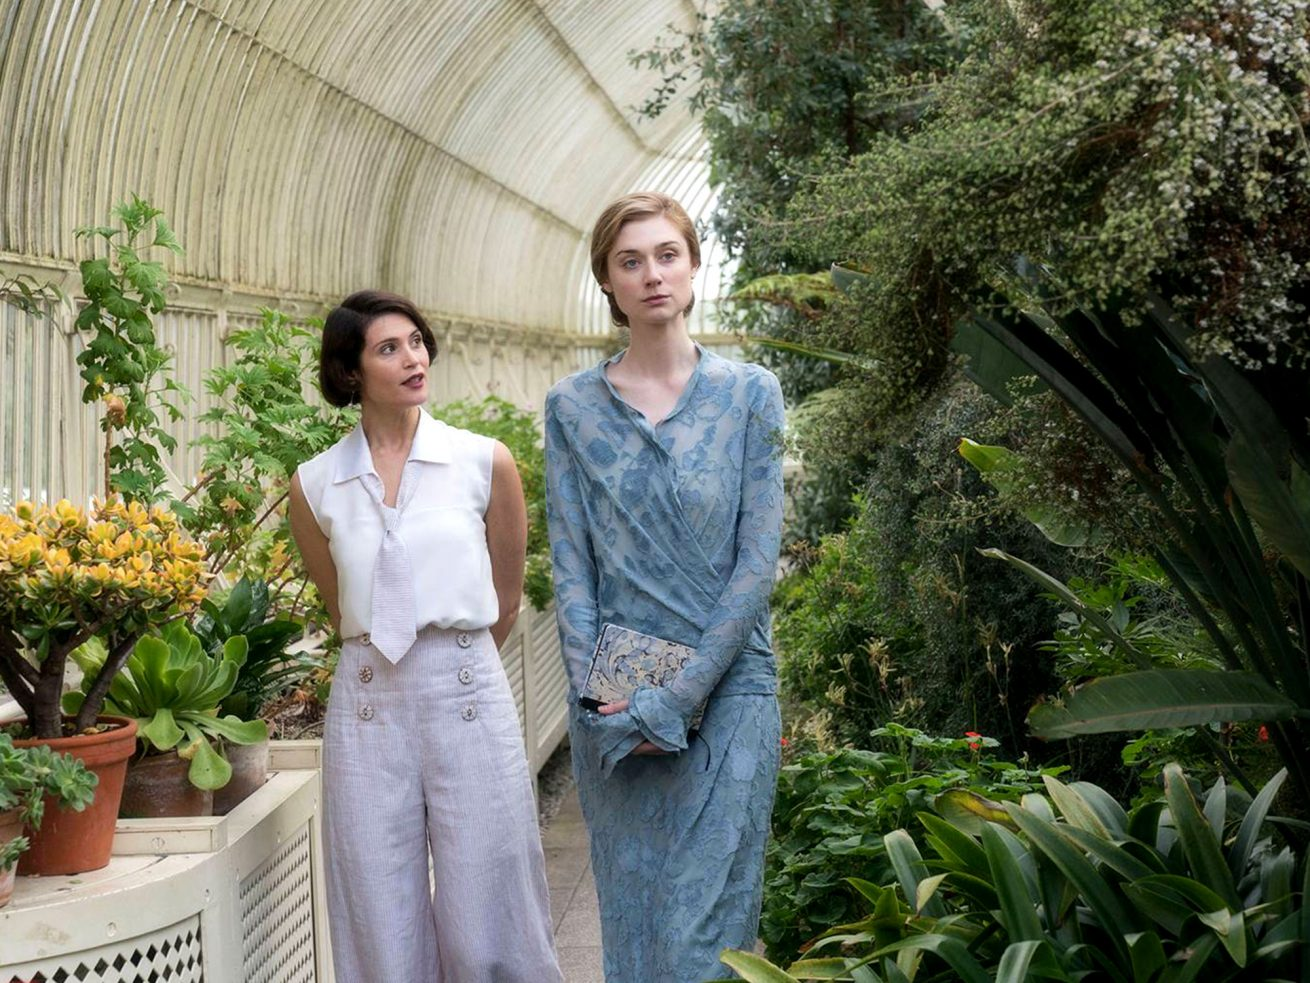 virginia woolf ve vita sackville-west aşkı vita & virginia'da